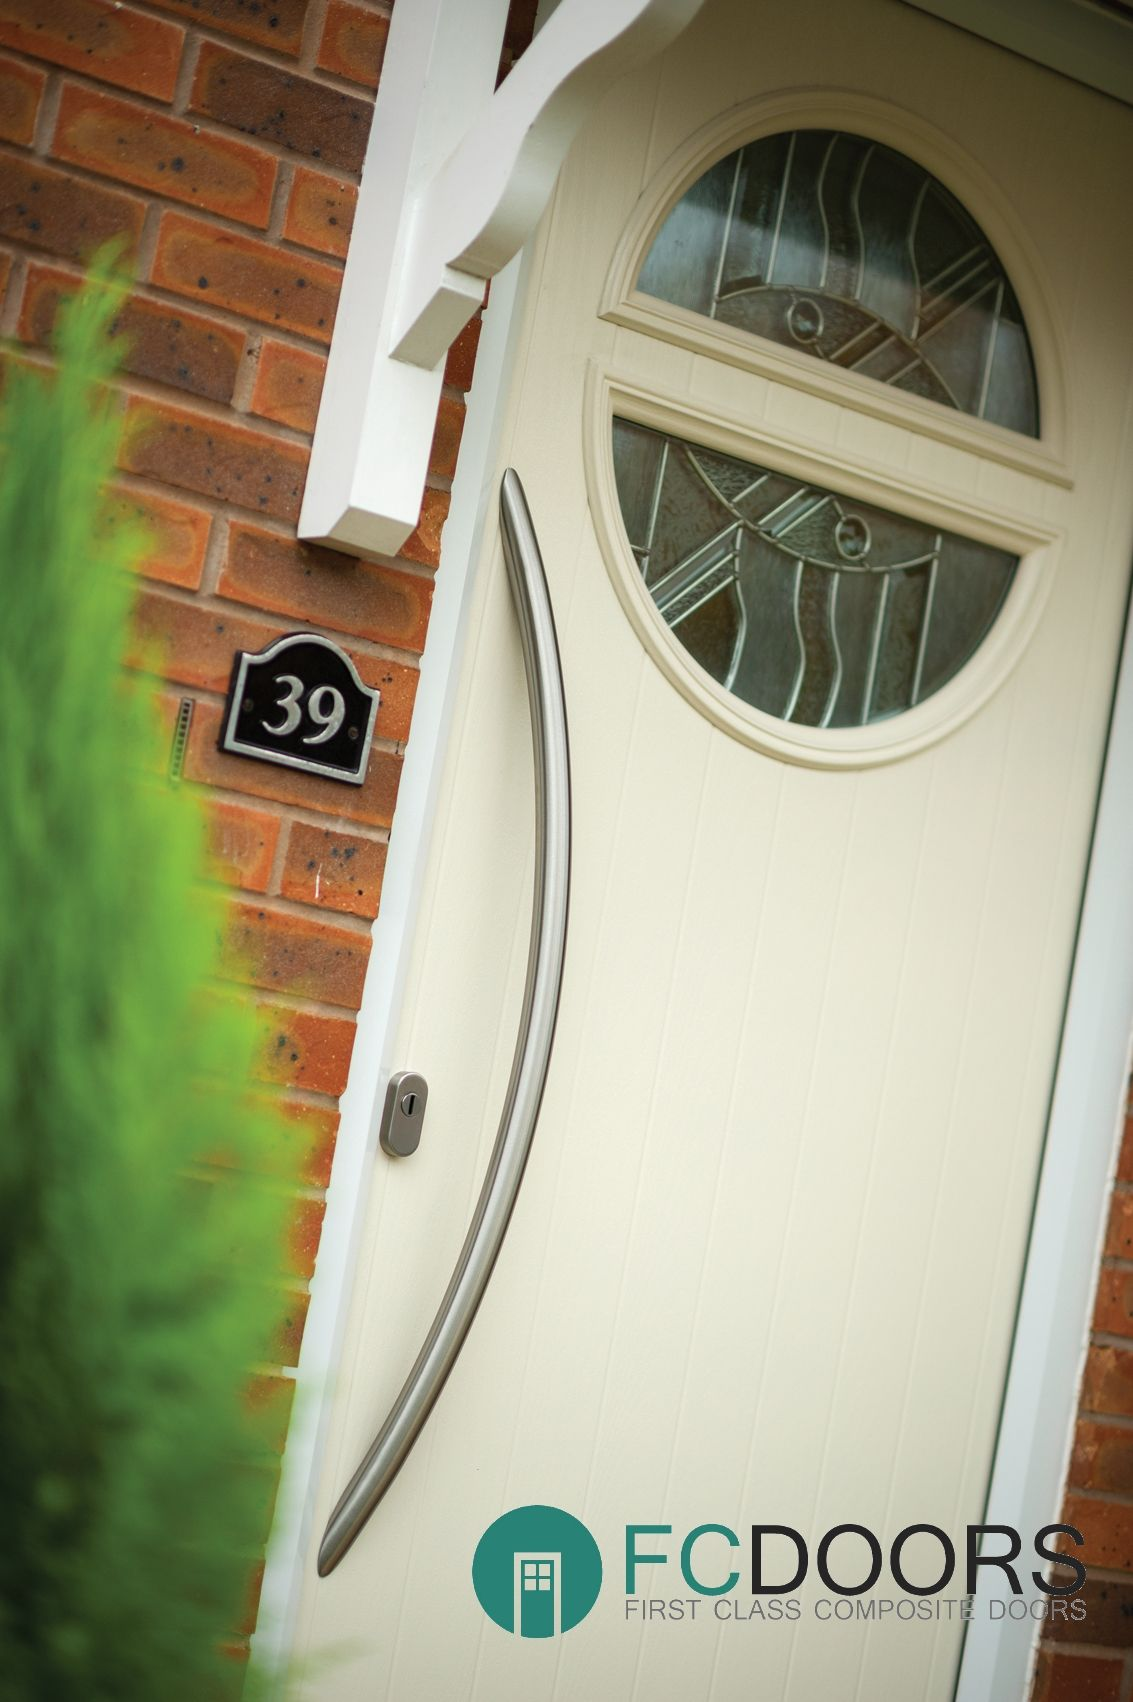 Contemporary Cream Circle Composite Door With A Long Bow Handle Making Your Home Unique And